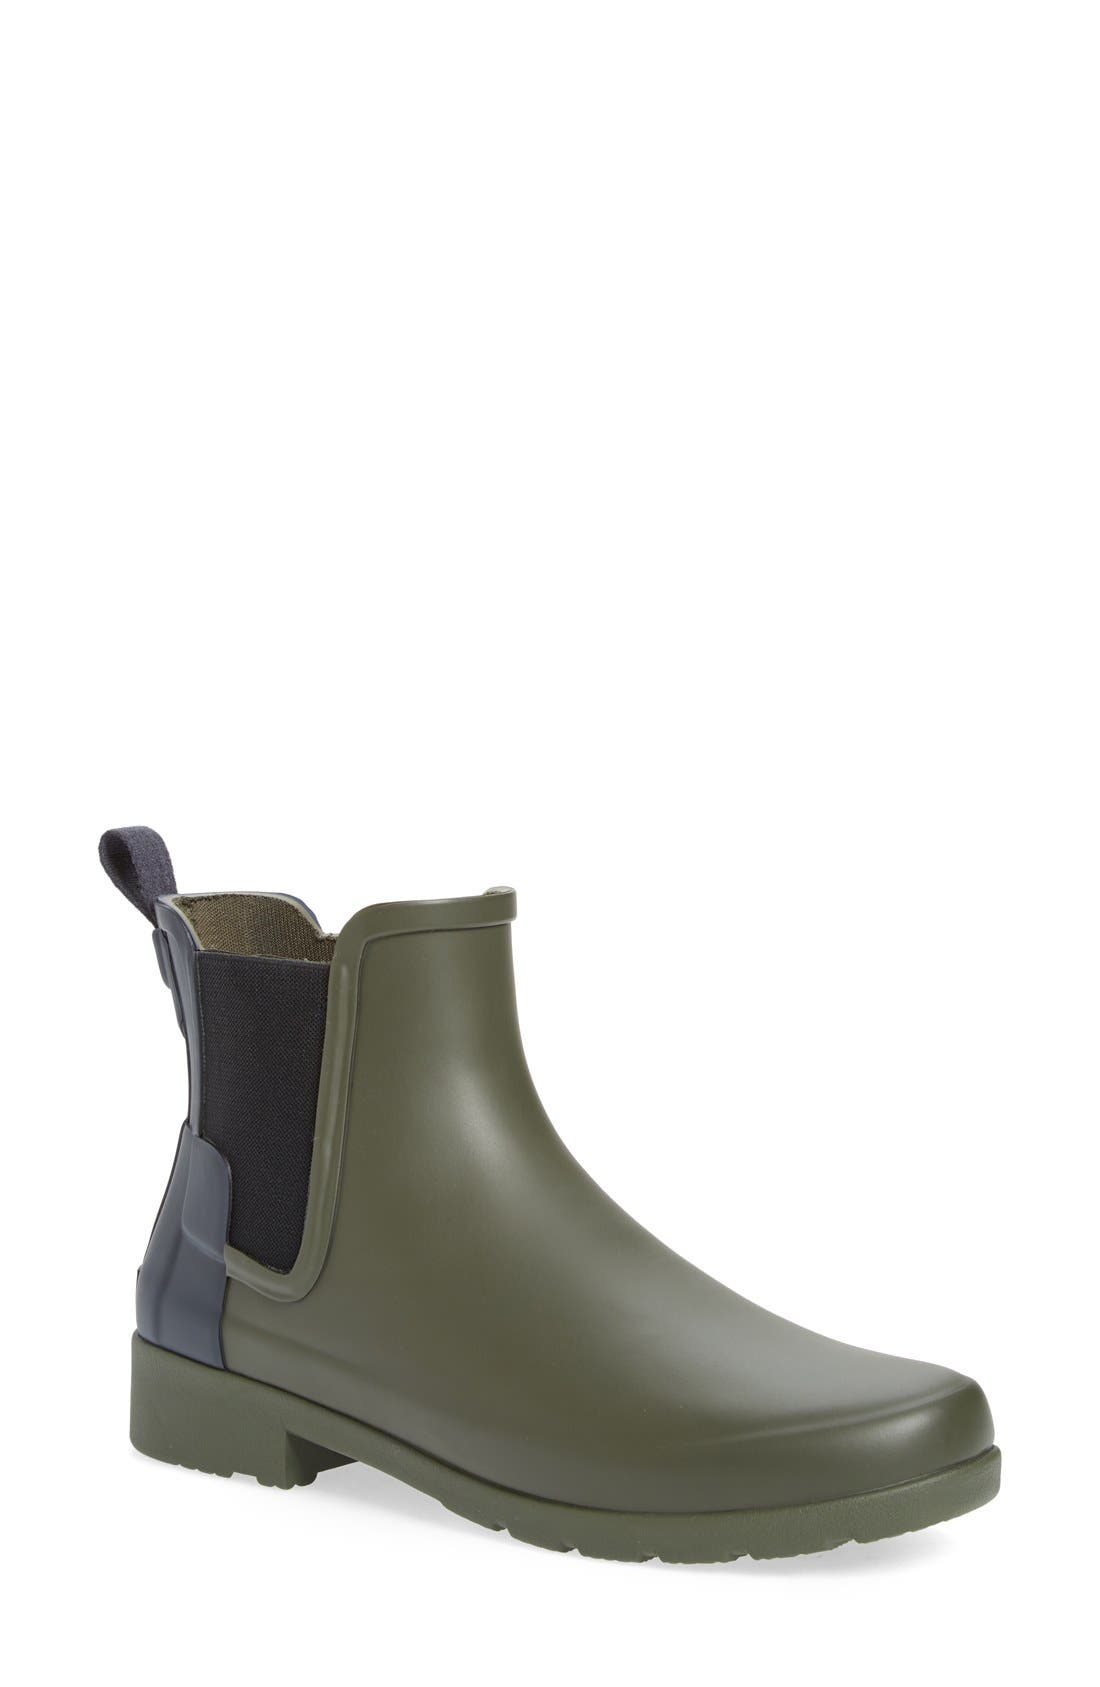 Alternate Image 1 Selected - Hunter 'Refined - Chelsea' Two-Tone Boot (Women)